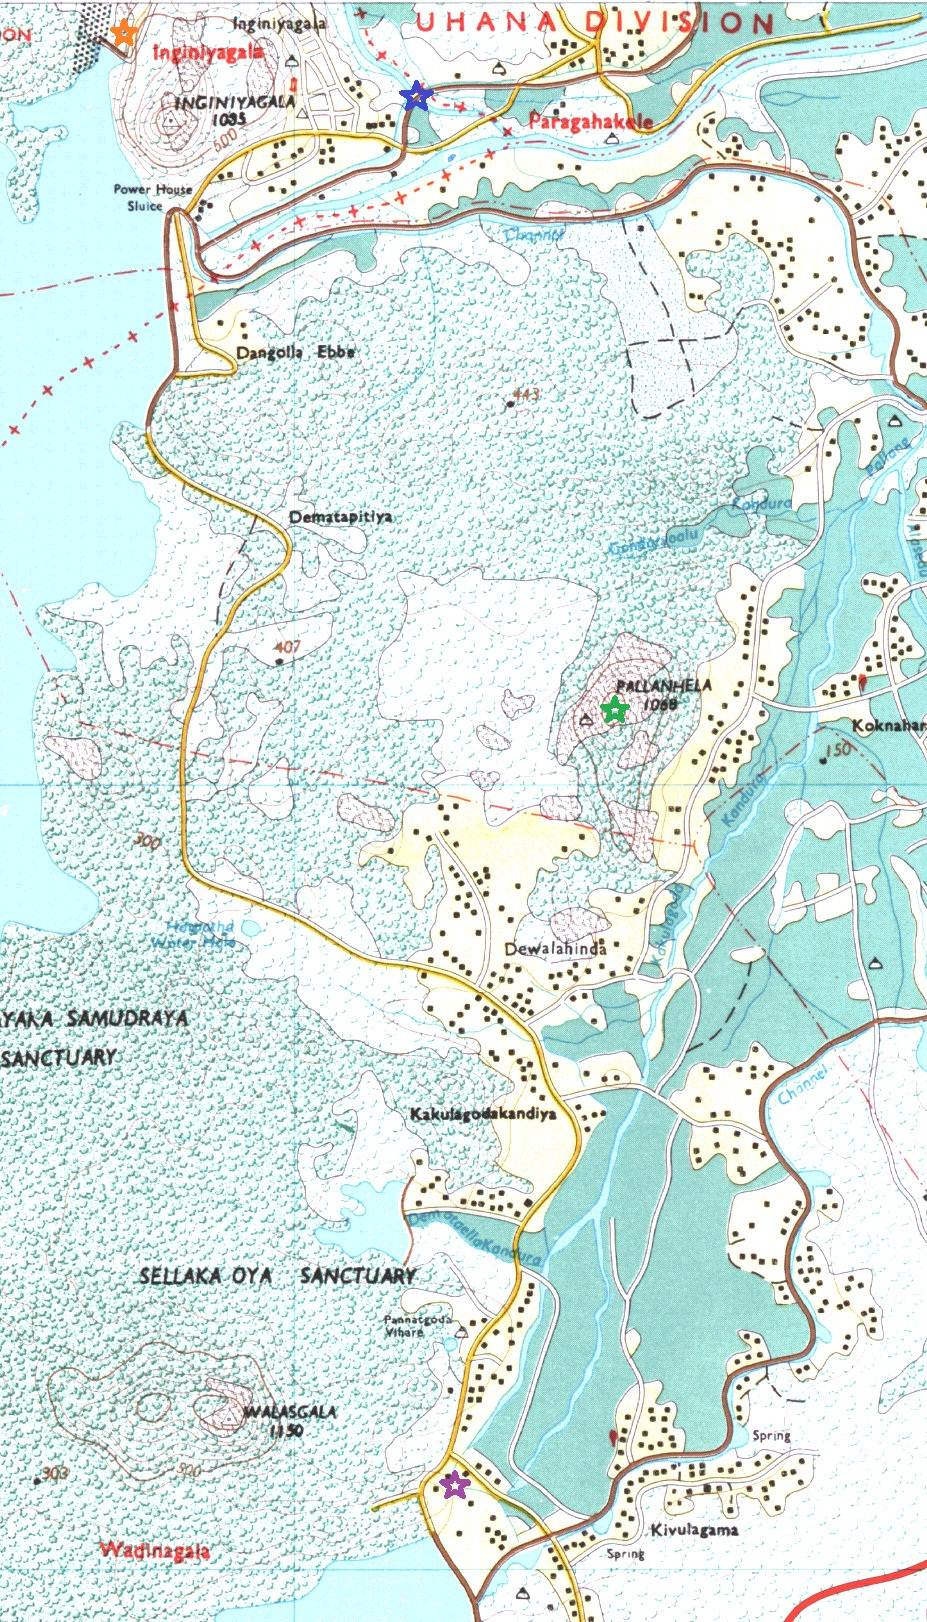 map in blue=the waterways, green=pallan hela, orange=spill, purple=hot water spring